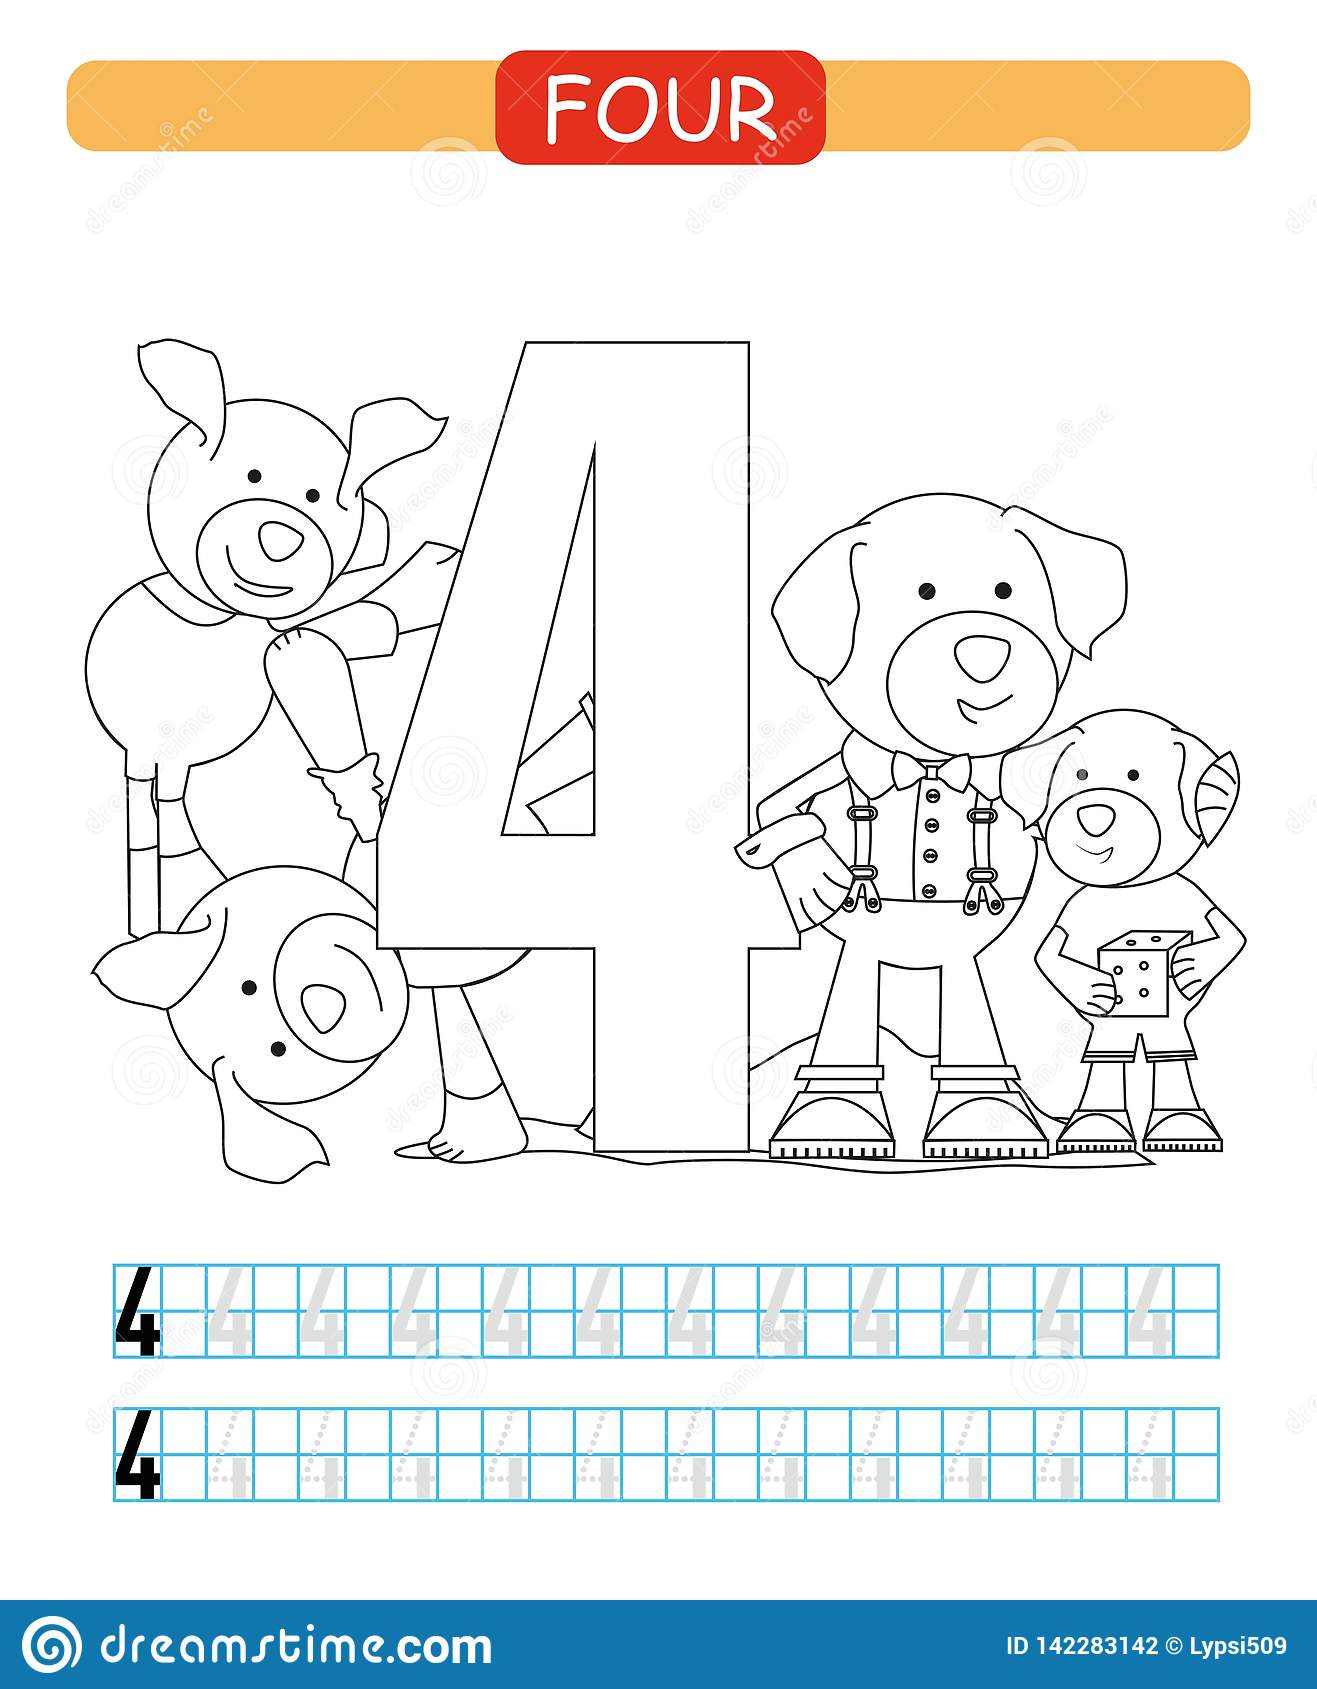 Four. Learning Number 4. Coloring Printable Worksheet For ...